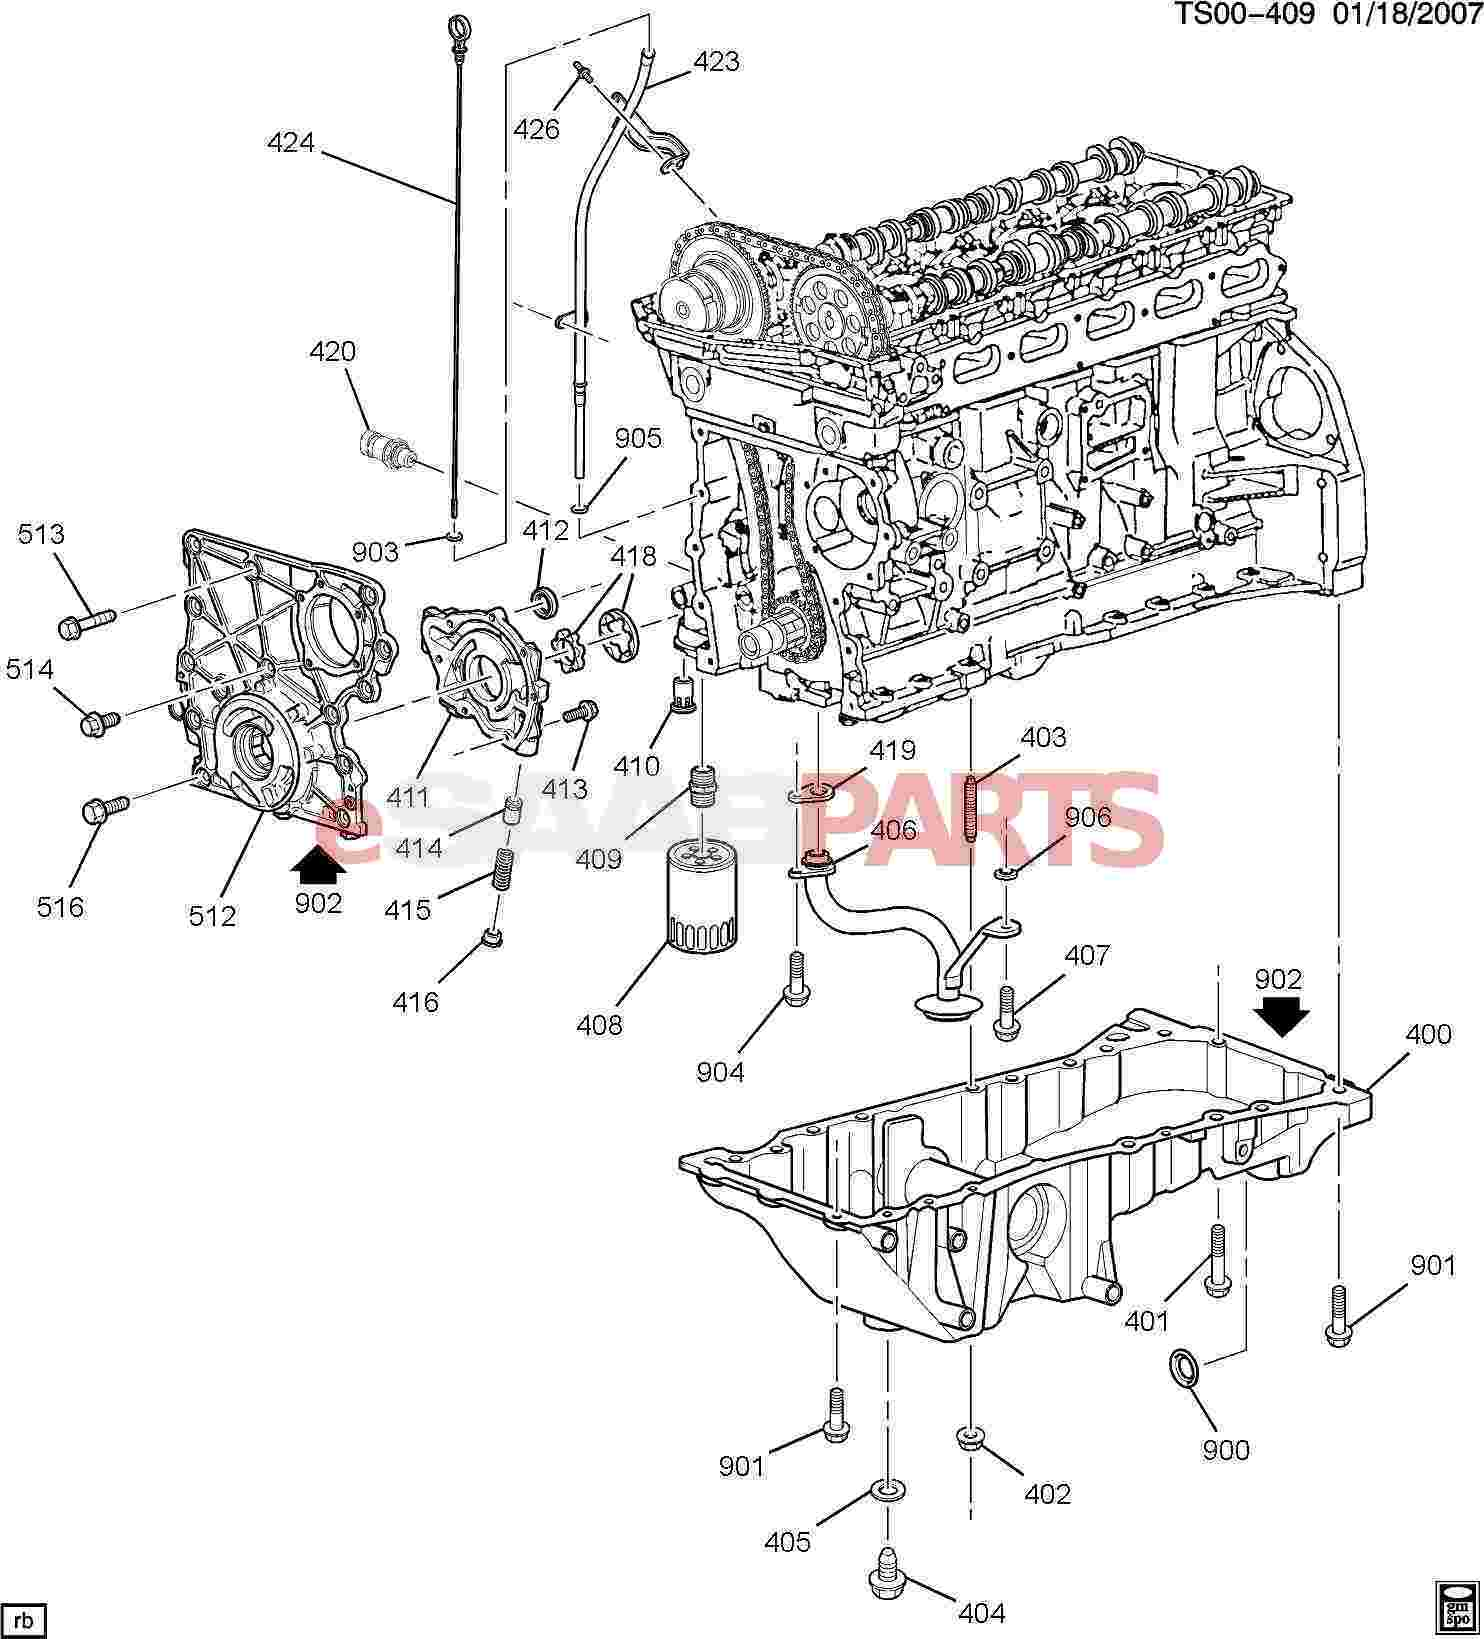 95783 12601932] saab cover, engine front genuine saab parts from ox66 oil pump wiring diagram at creativeand.co